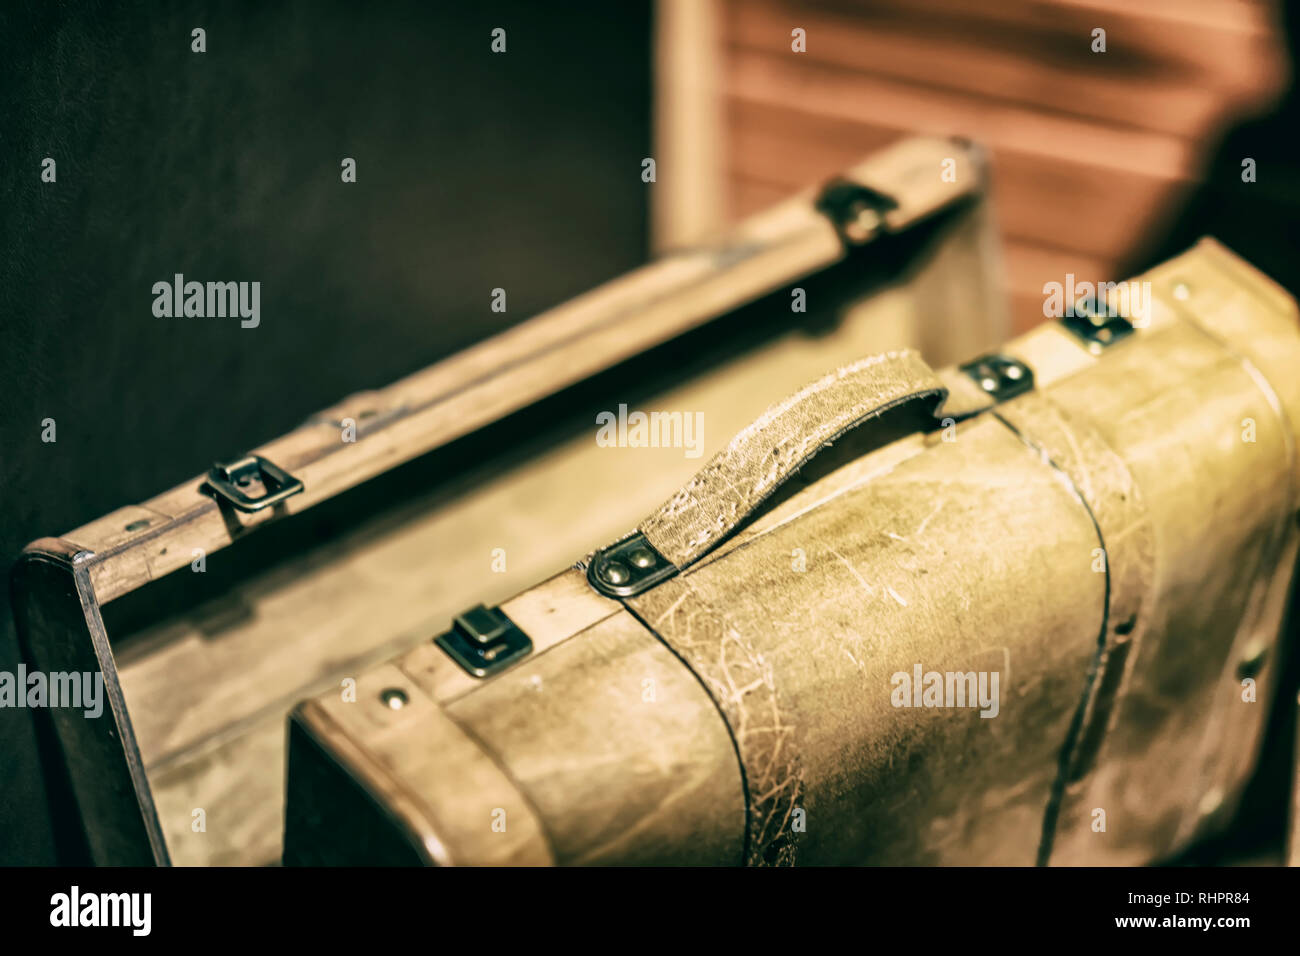 Old wooden travel suitcase closeup. Vintage background - Stock Image